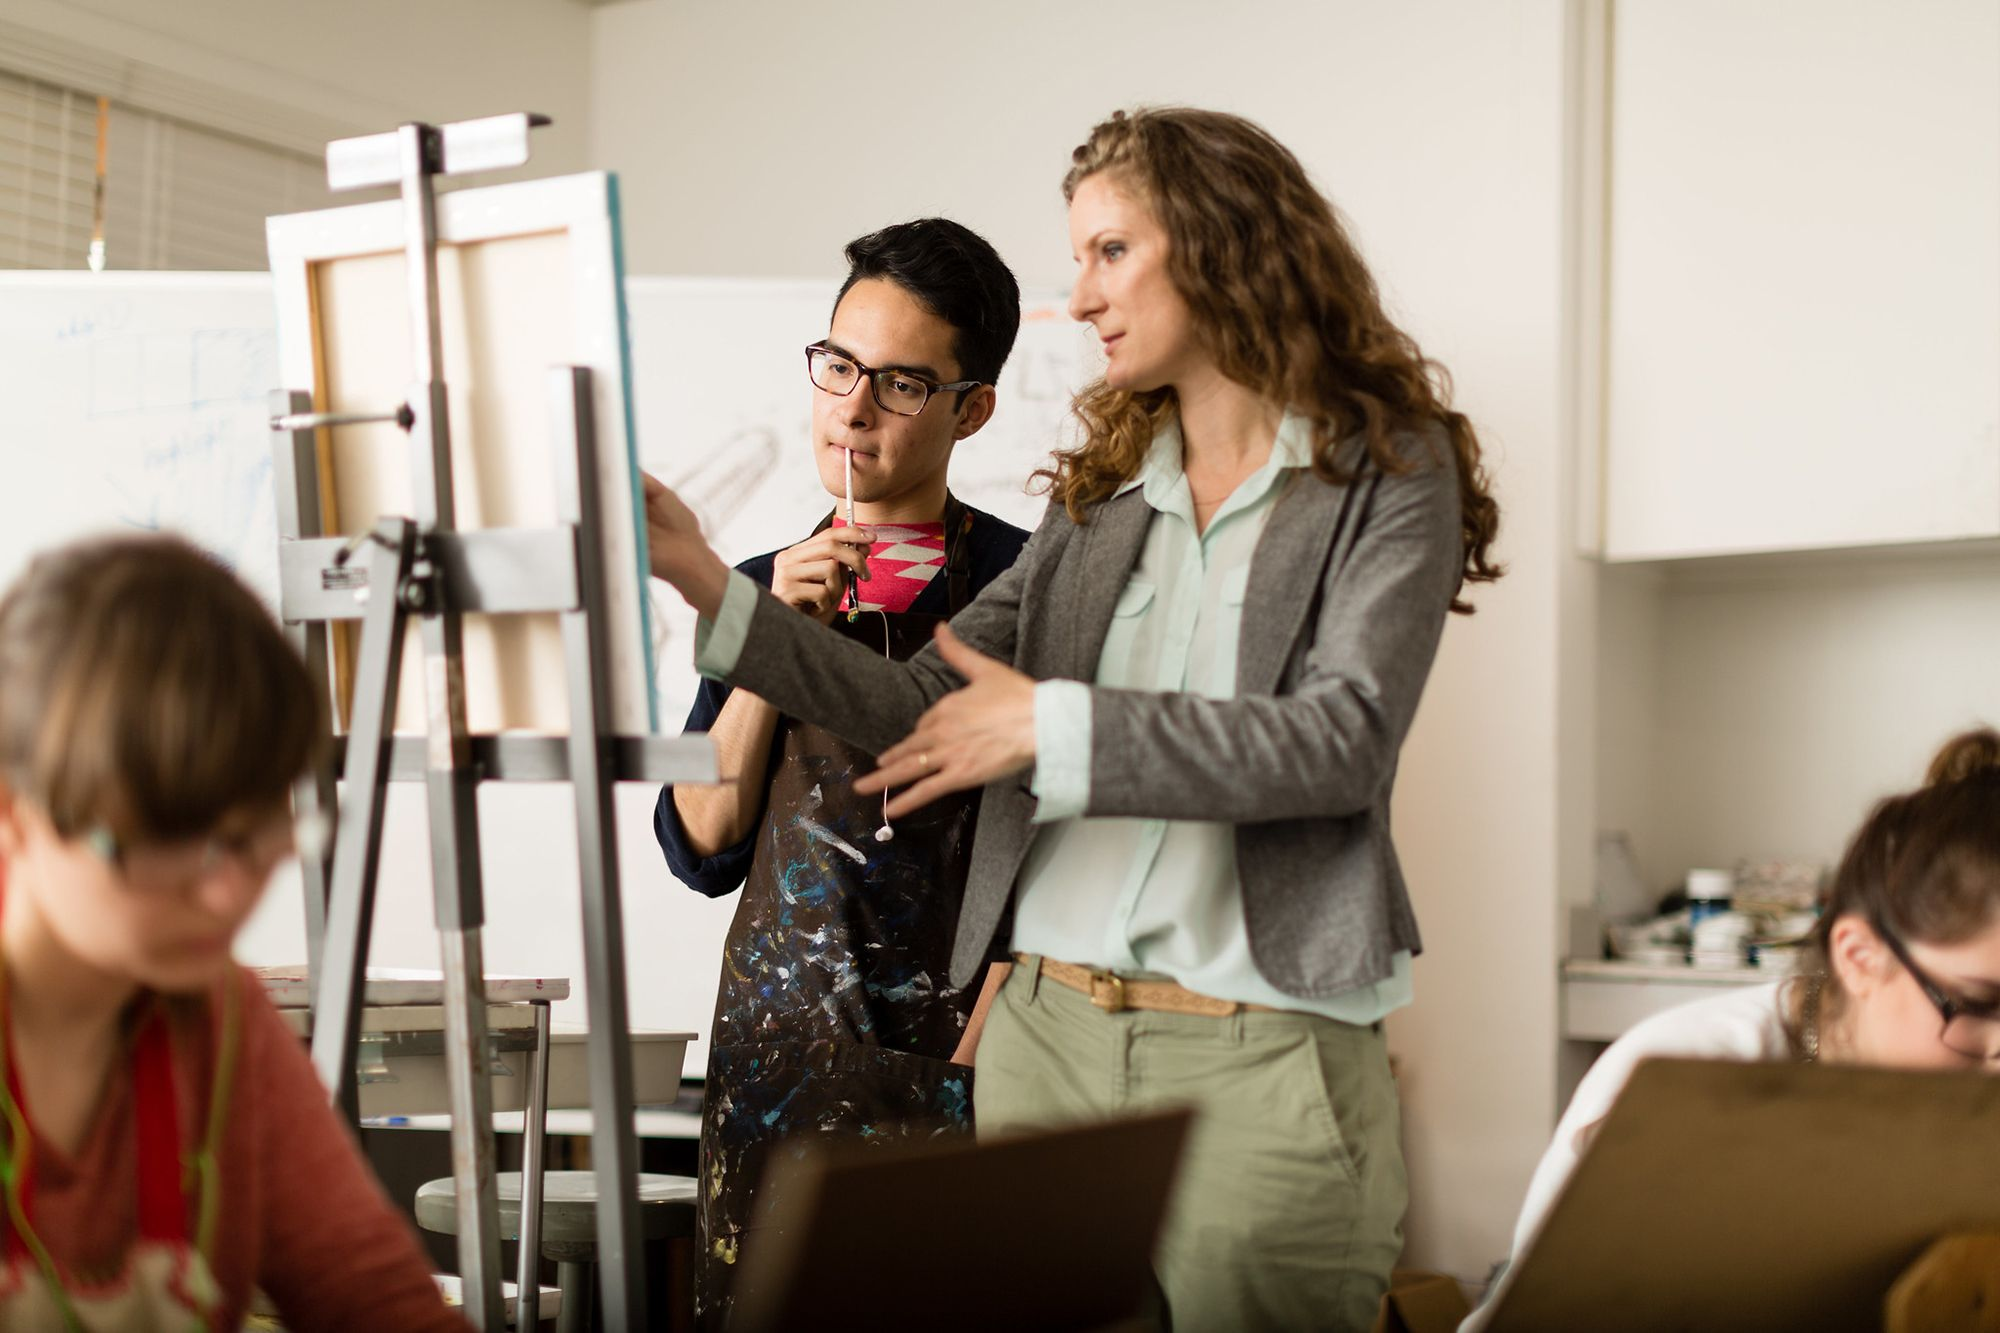 A studio art professor giving advice to her student as he paints his canvas resting on an easel.